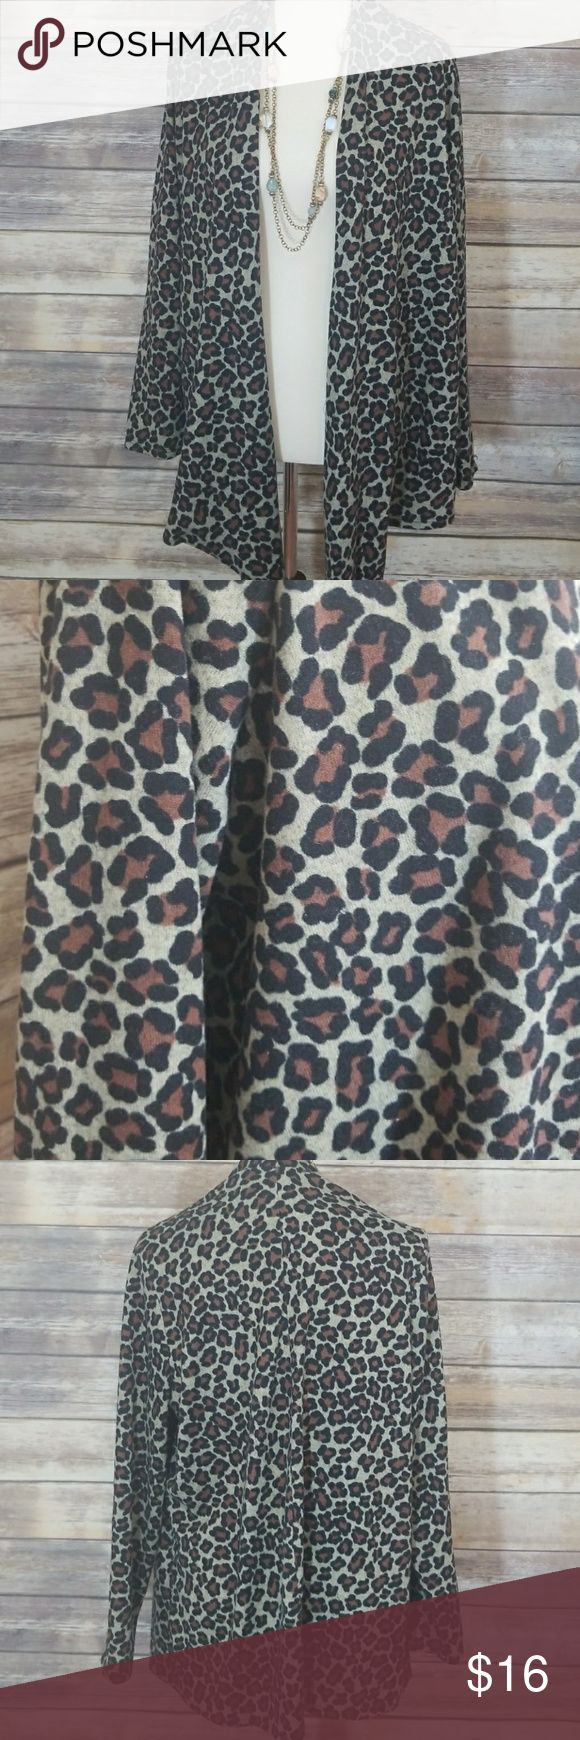 Animal print cardigan. Open front cardigan Open front/ the optional cardigan. Animal print. Very comfortable. Hand wash cold. Earth tone colors. Size XL fits more like large. Slinky Brand Sweaters Cardigans